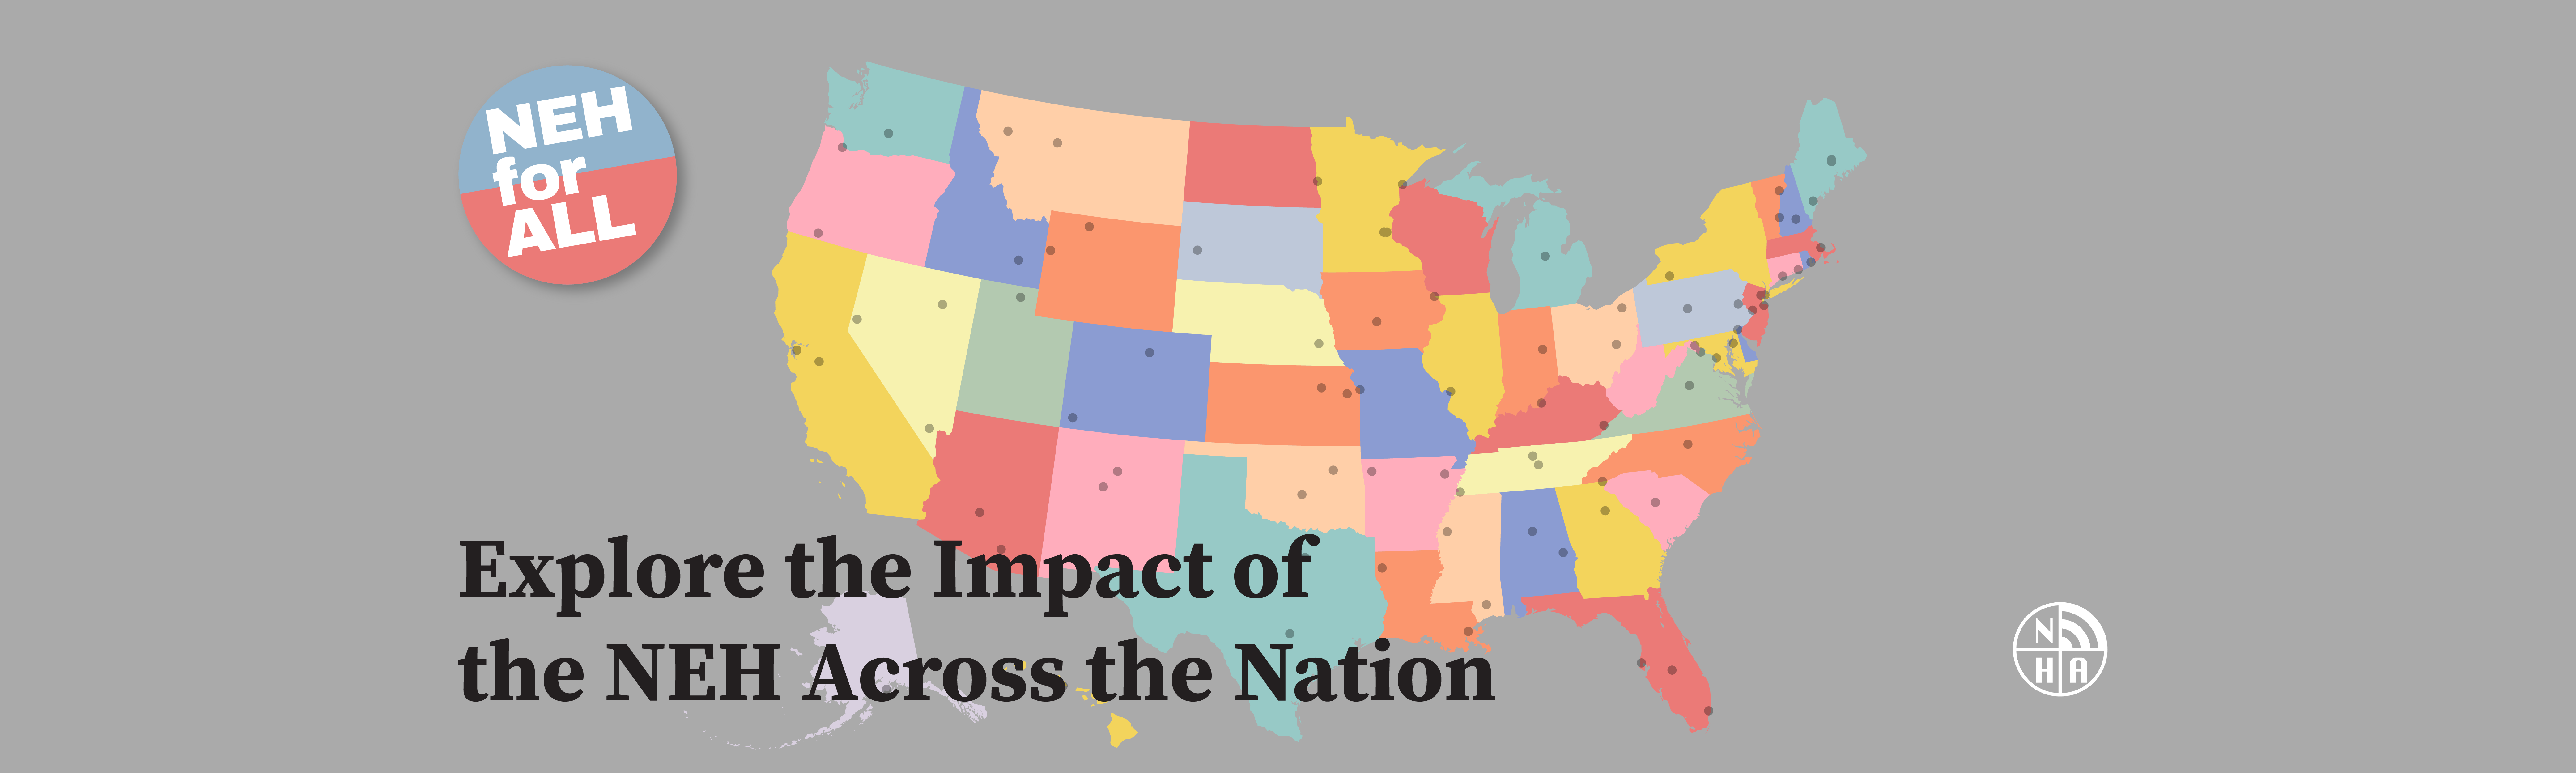 Explore the NEH's impact across the country!